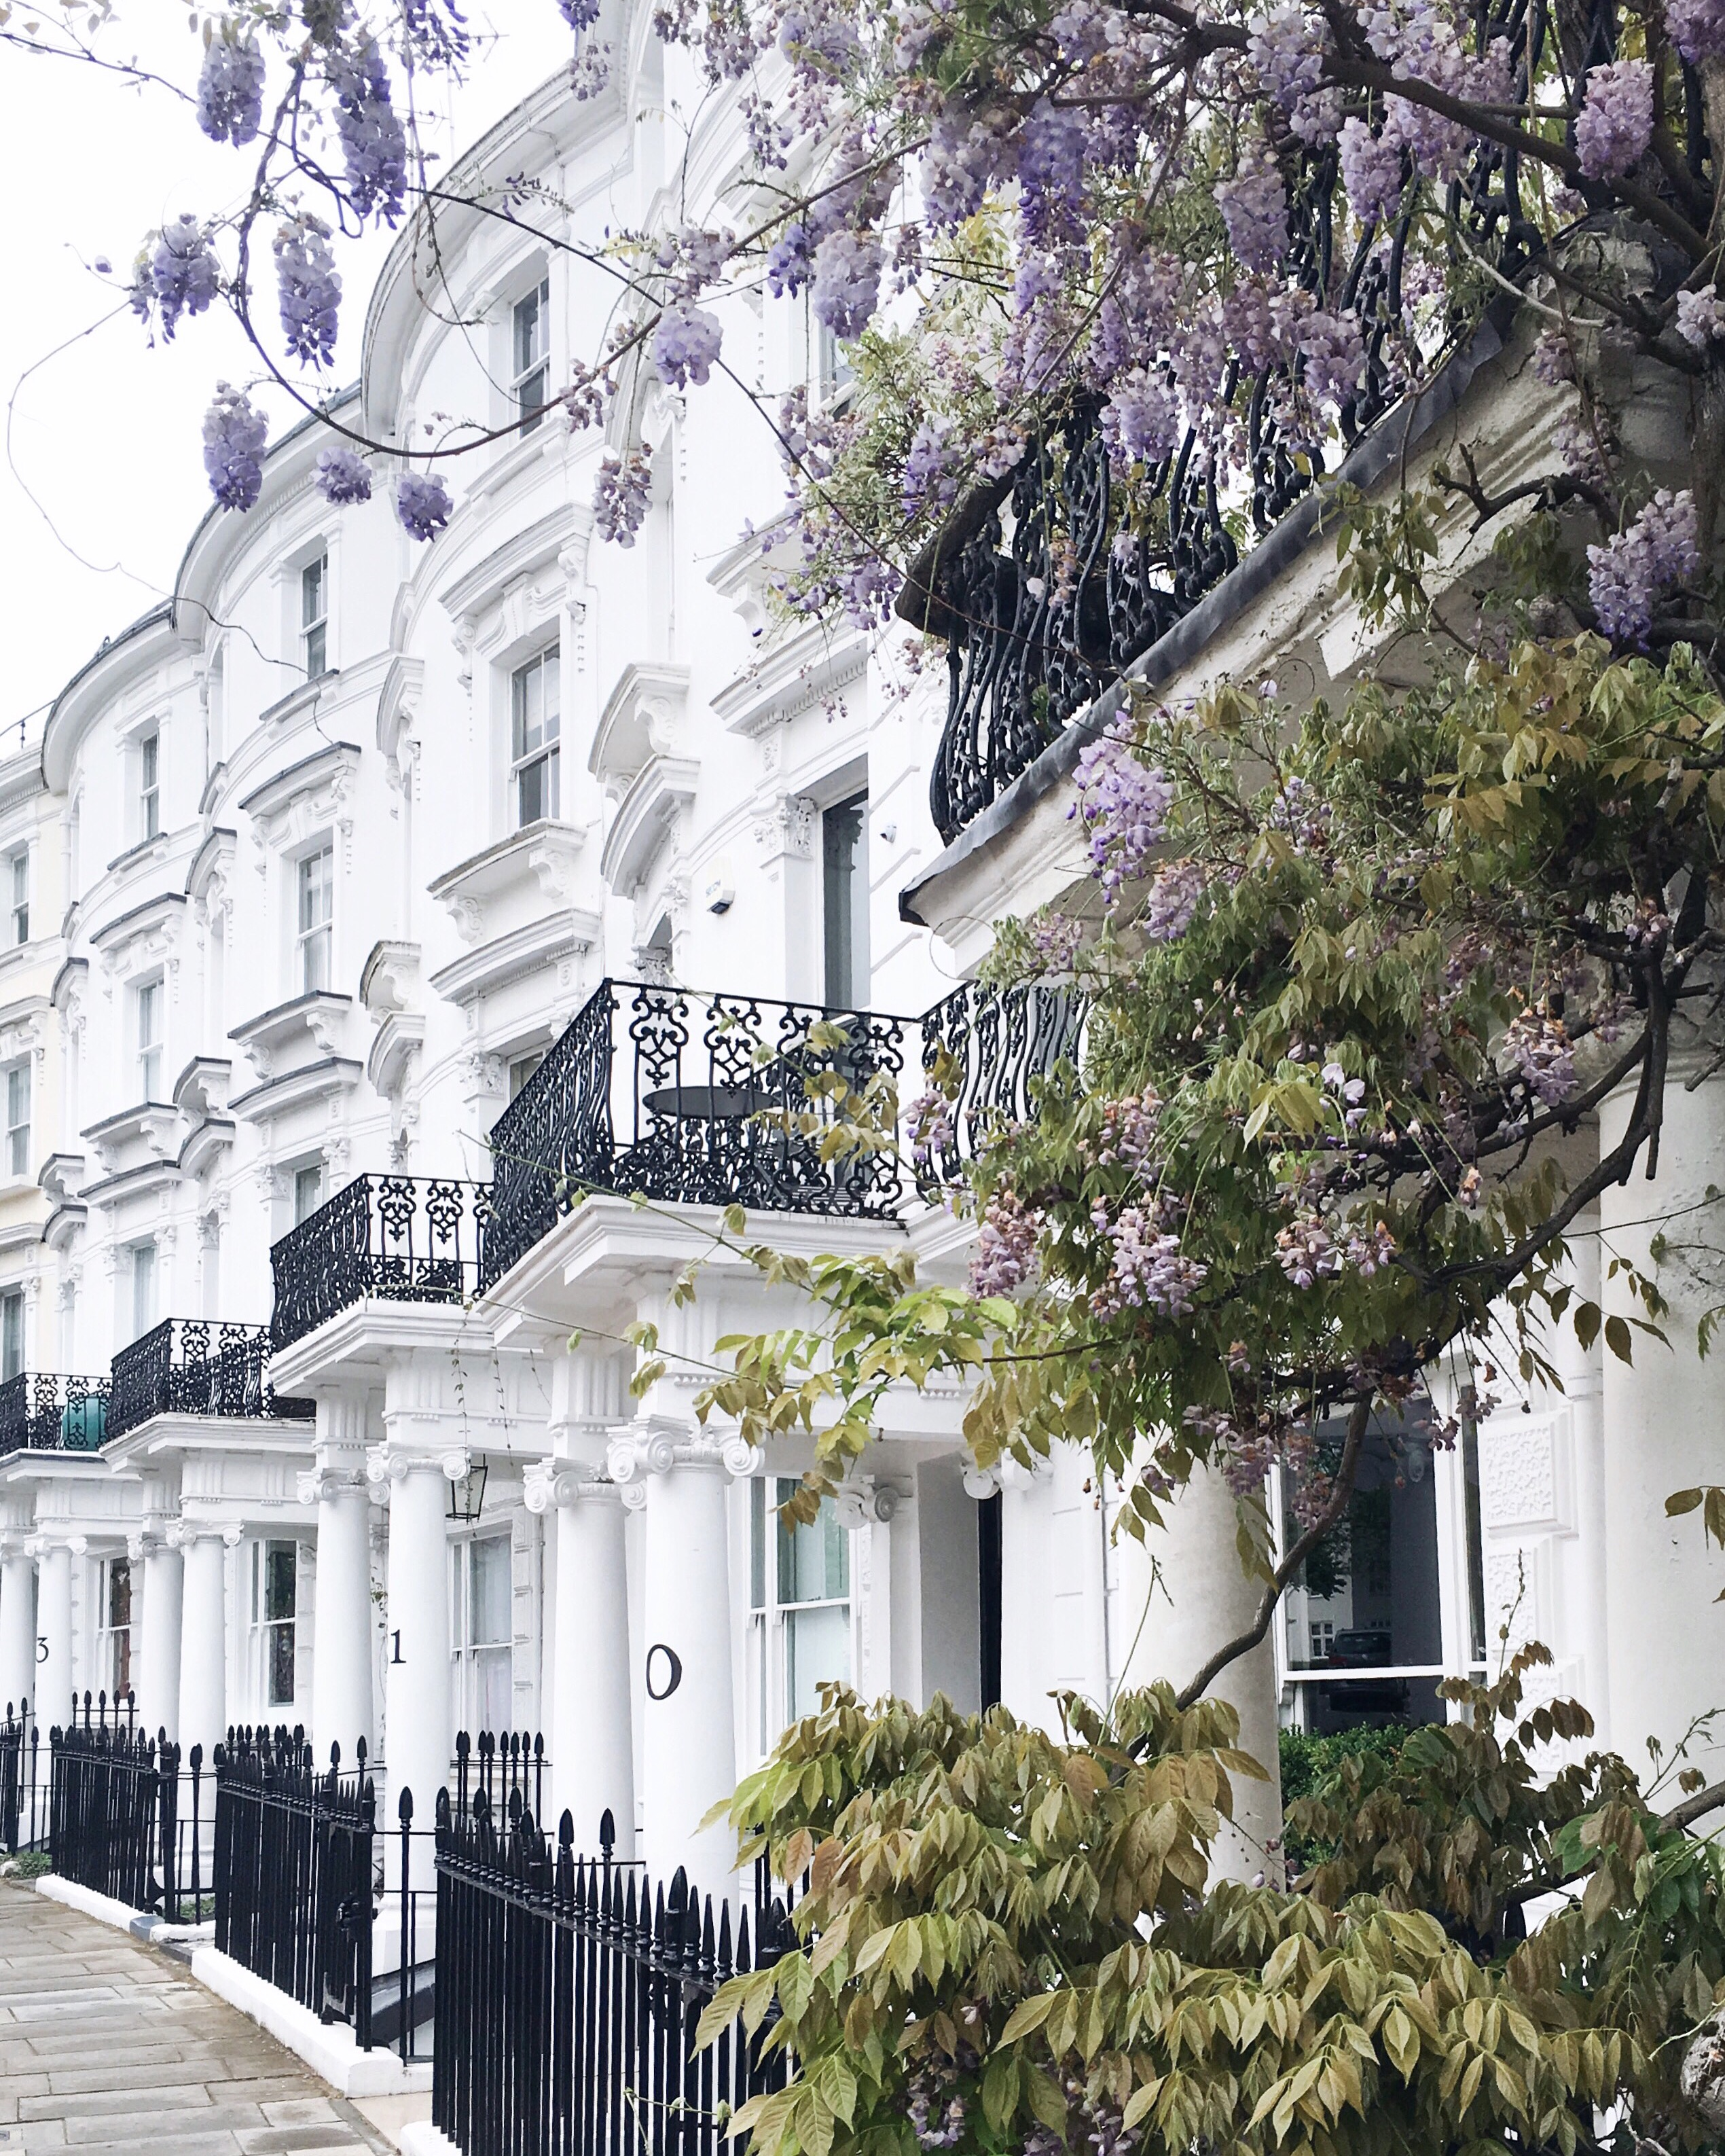 London houses with wisteria - Instagram clichés